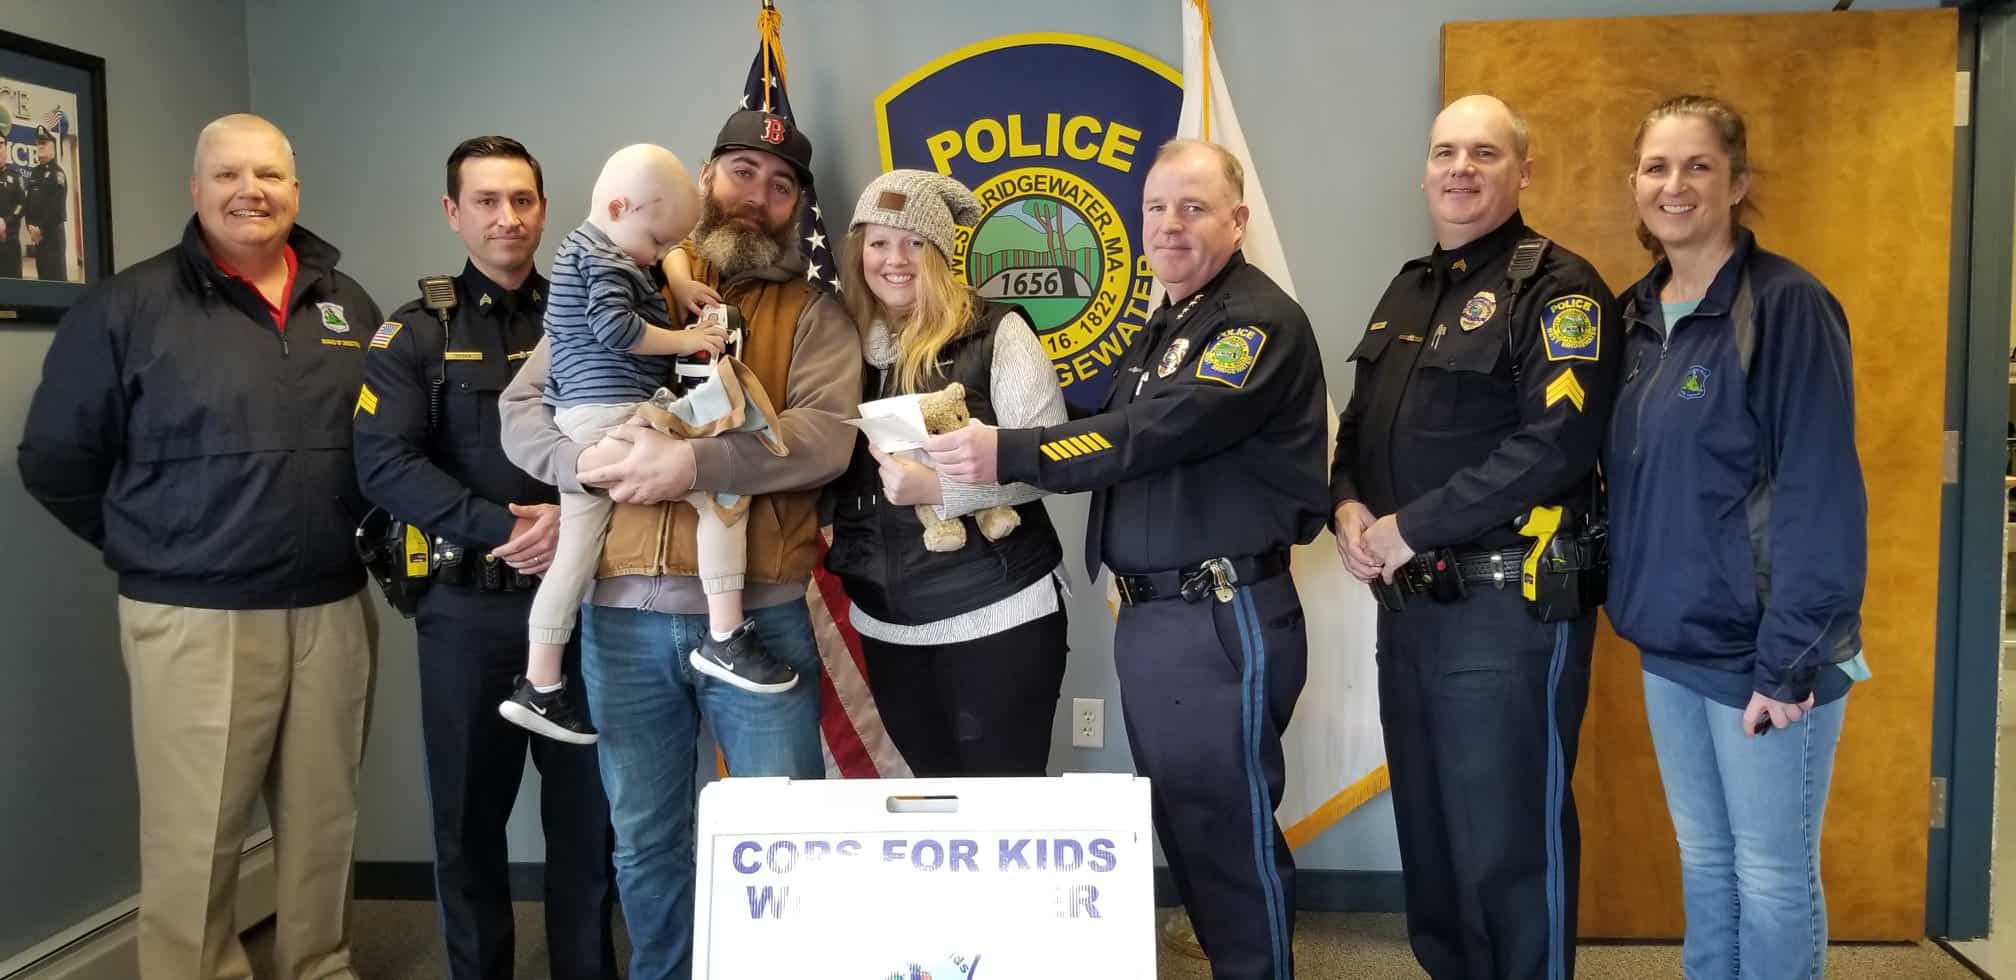 CFKWC and West Bridgewater PD make donation to Jase Russell age 3 yrs., and his parents